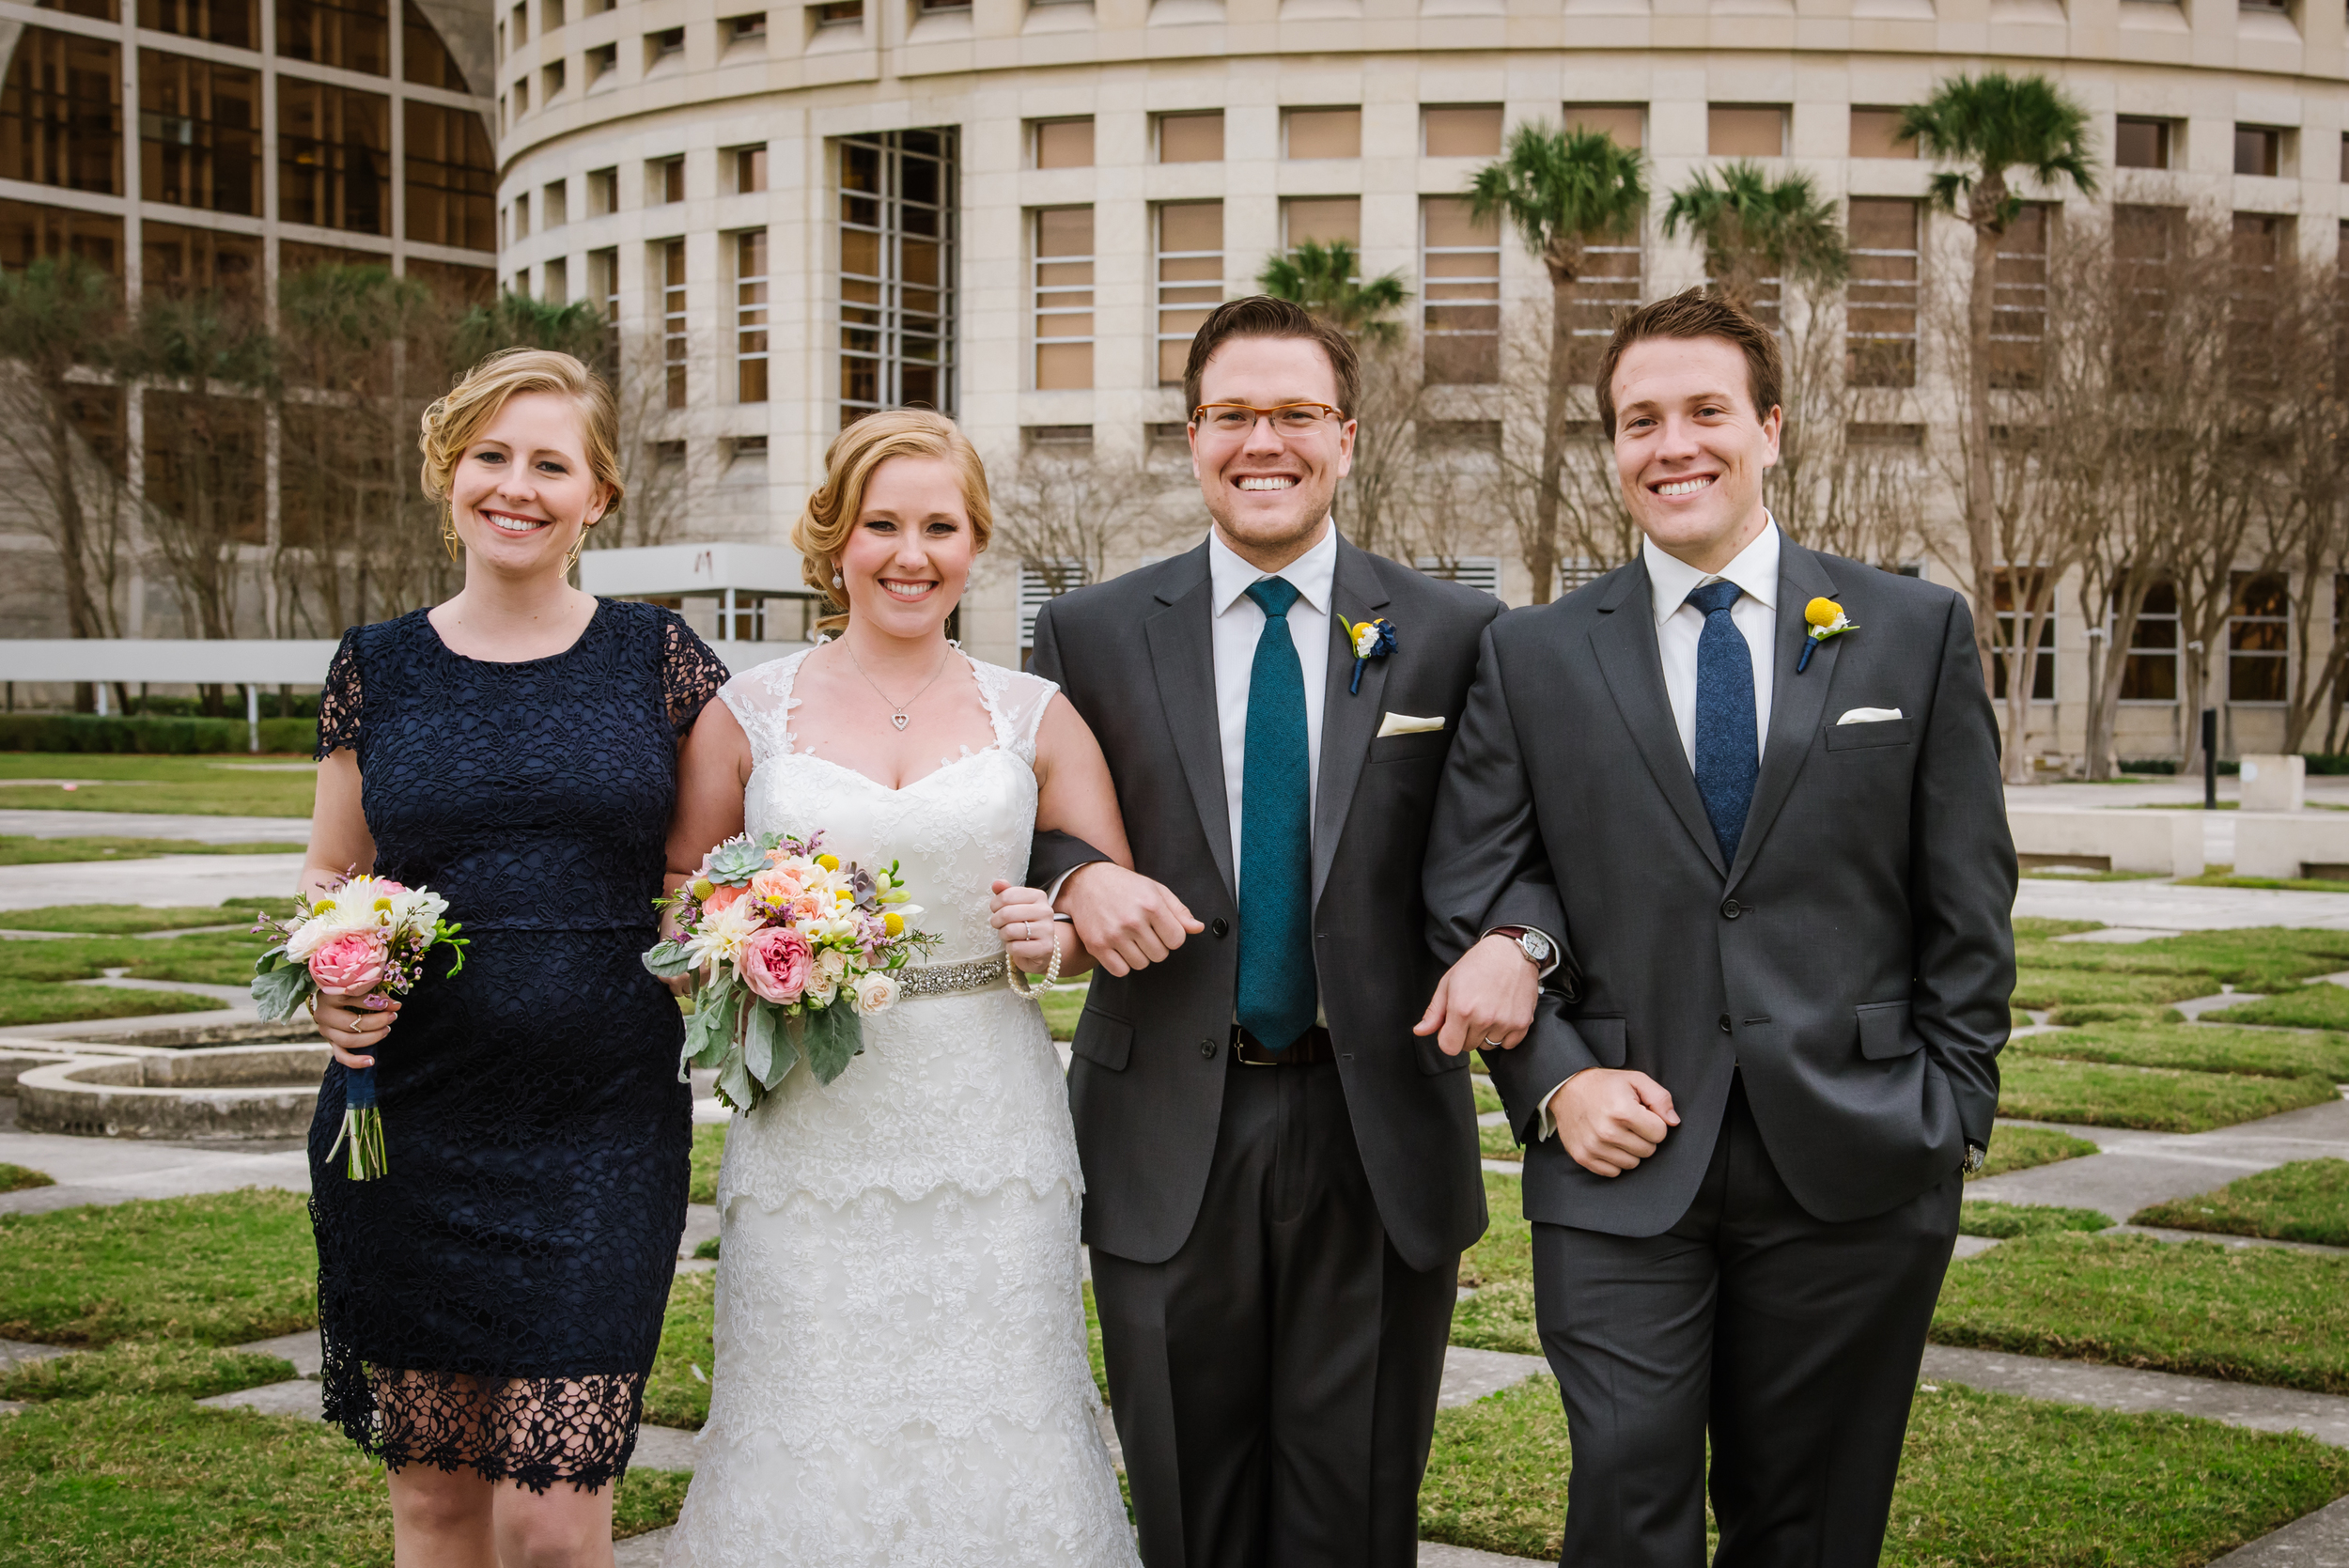 Next, Ana & Reece had a super rad and unique wedding in downtown! They are also both twins! How cool right?